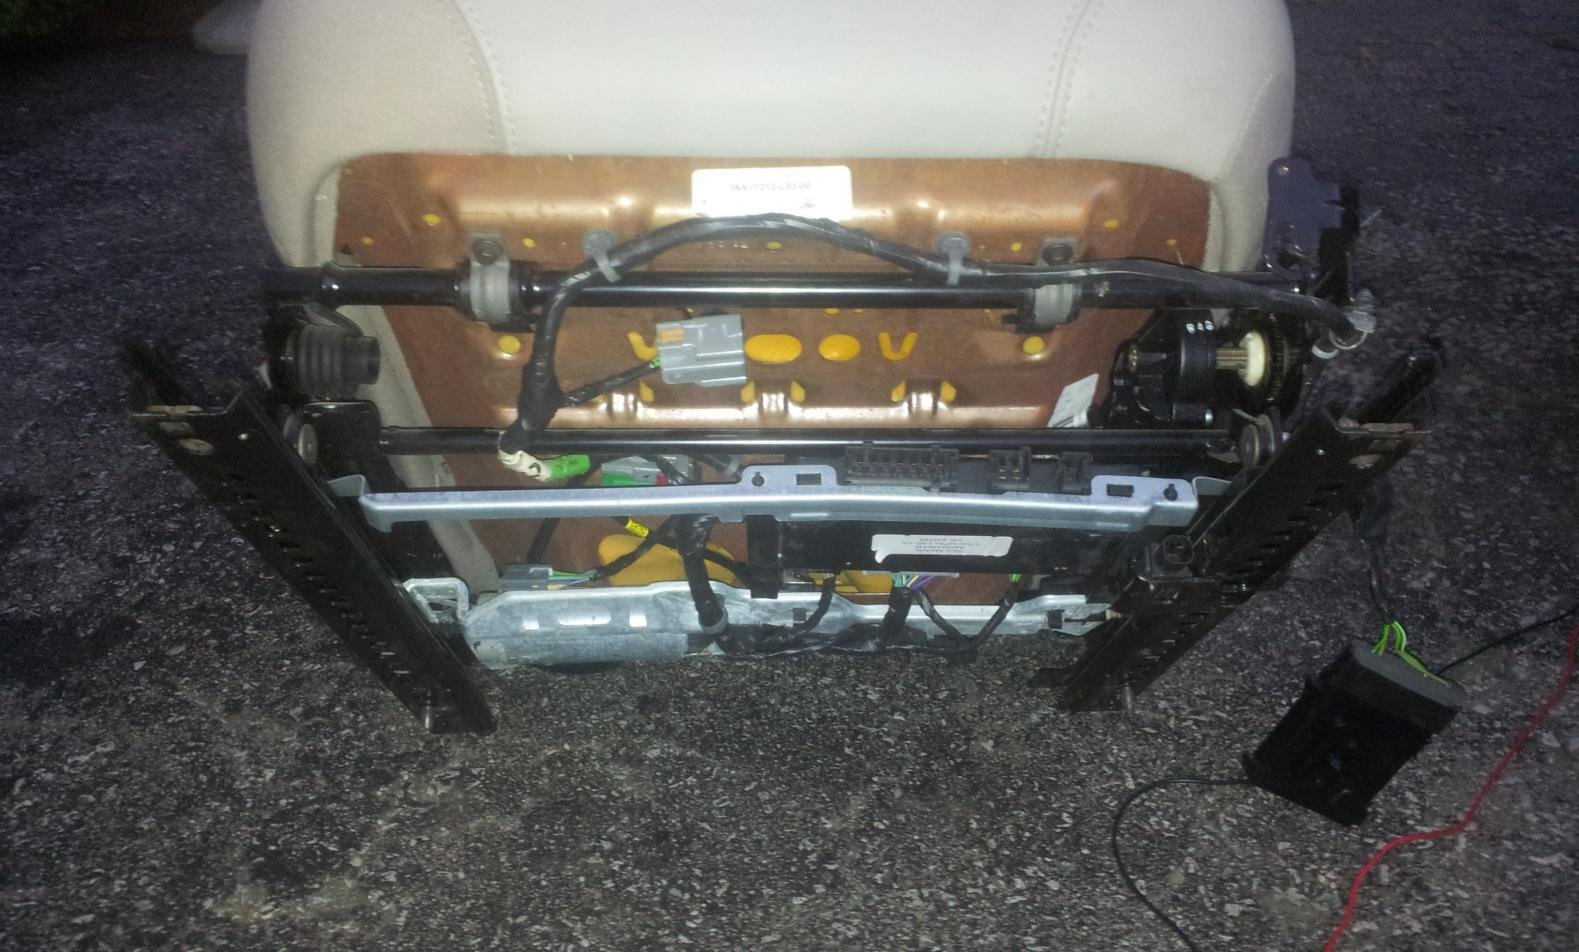 110 outlet wiring diagram panasonic radio need help with chrysler 300 power seat - 300c forum: & srt8 forums